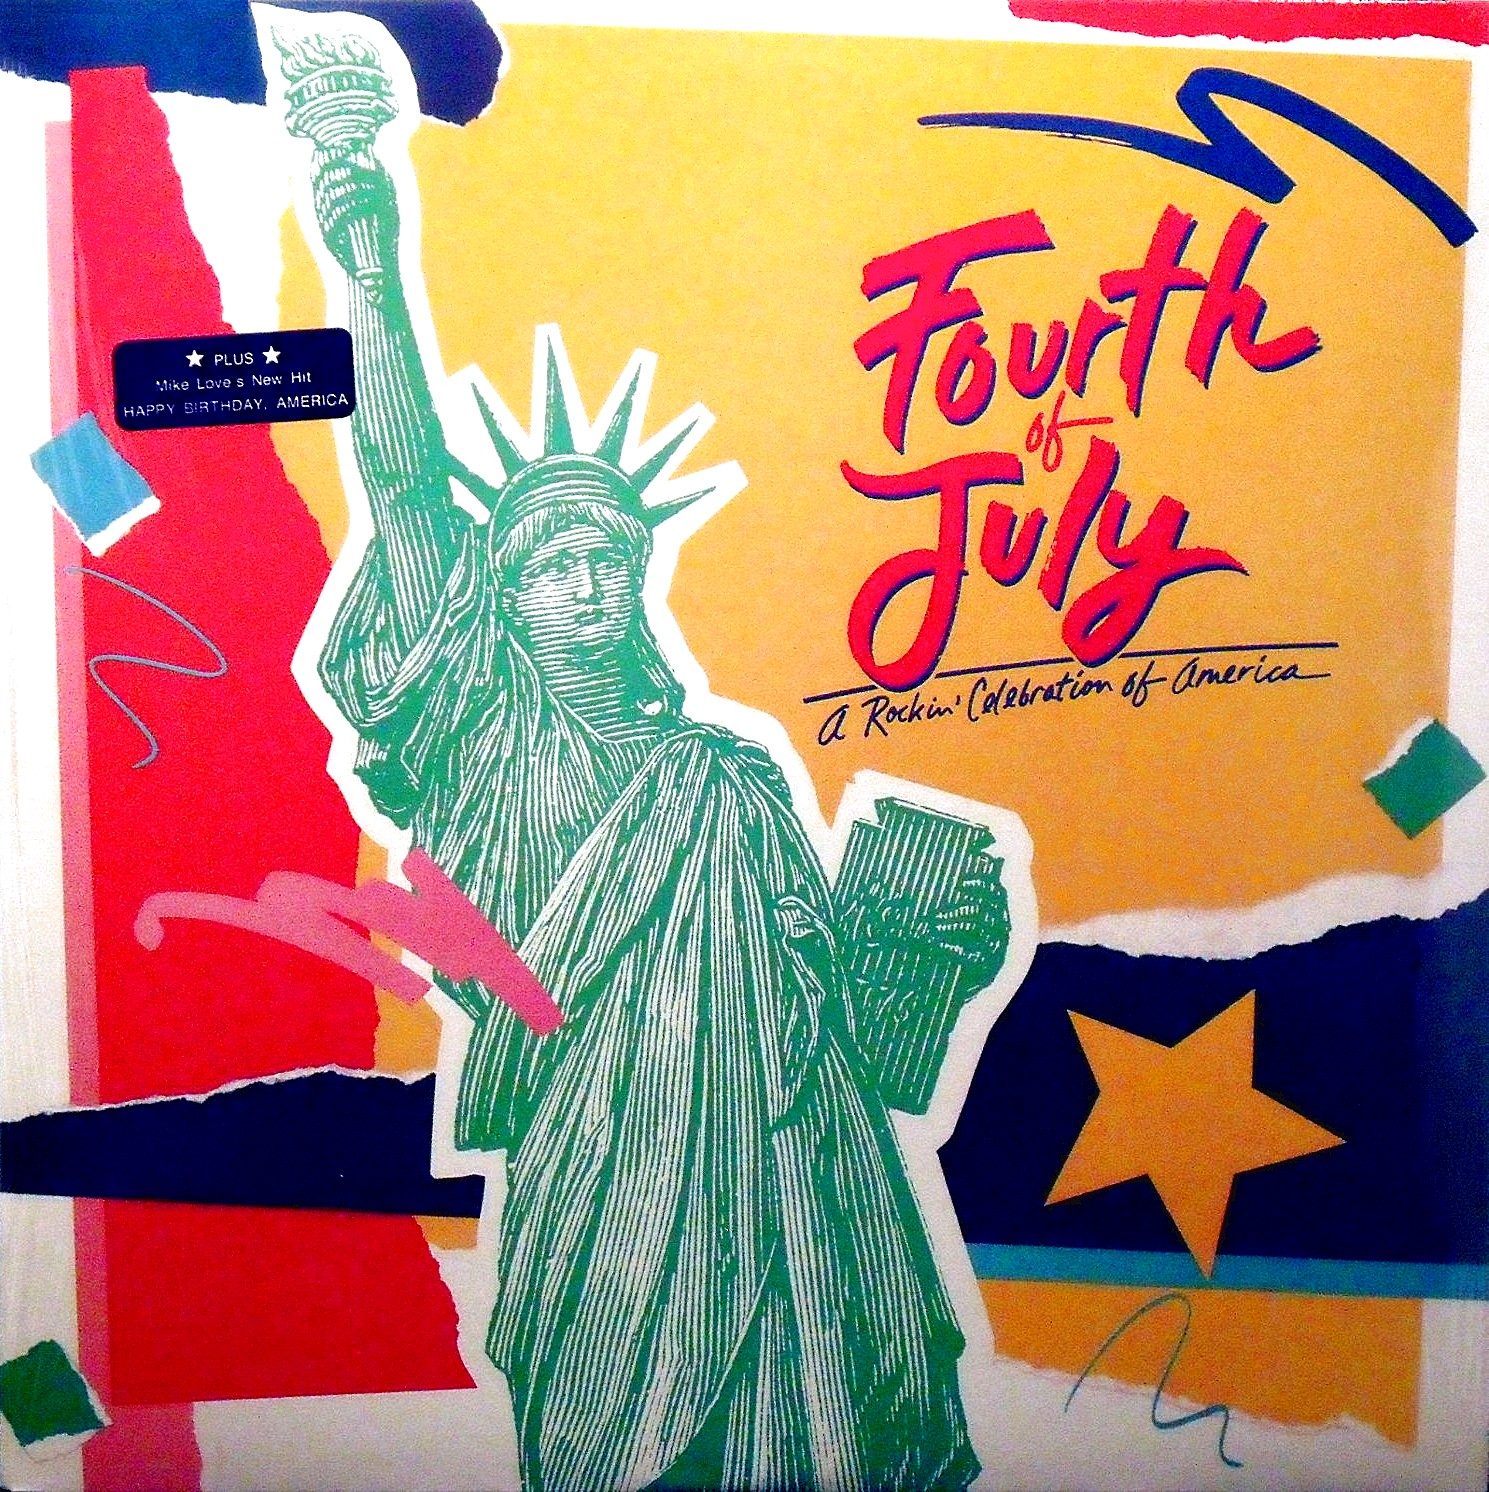 Fourth Of July cover